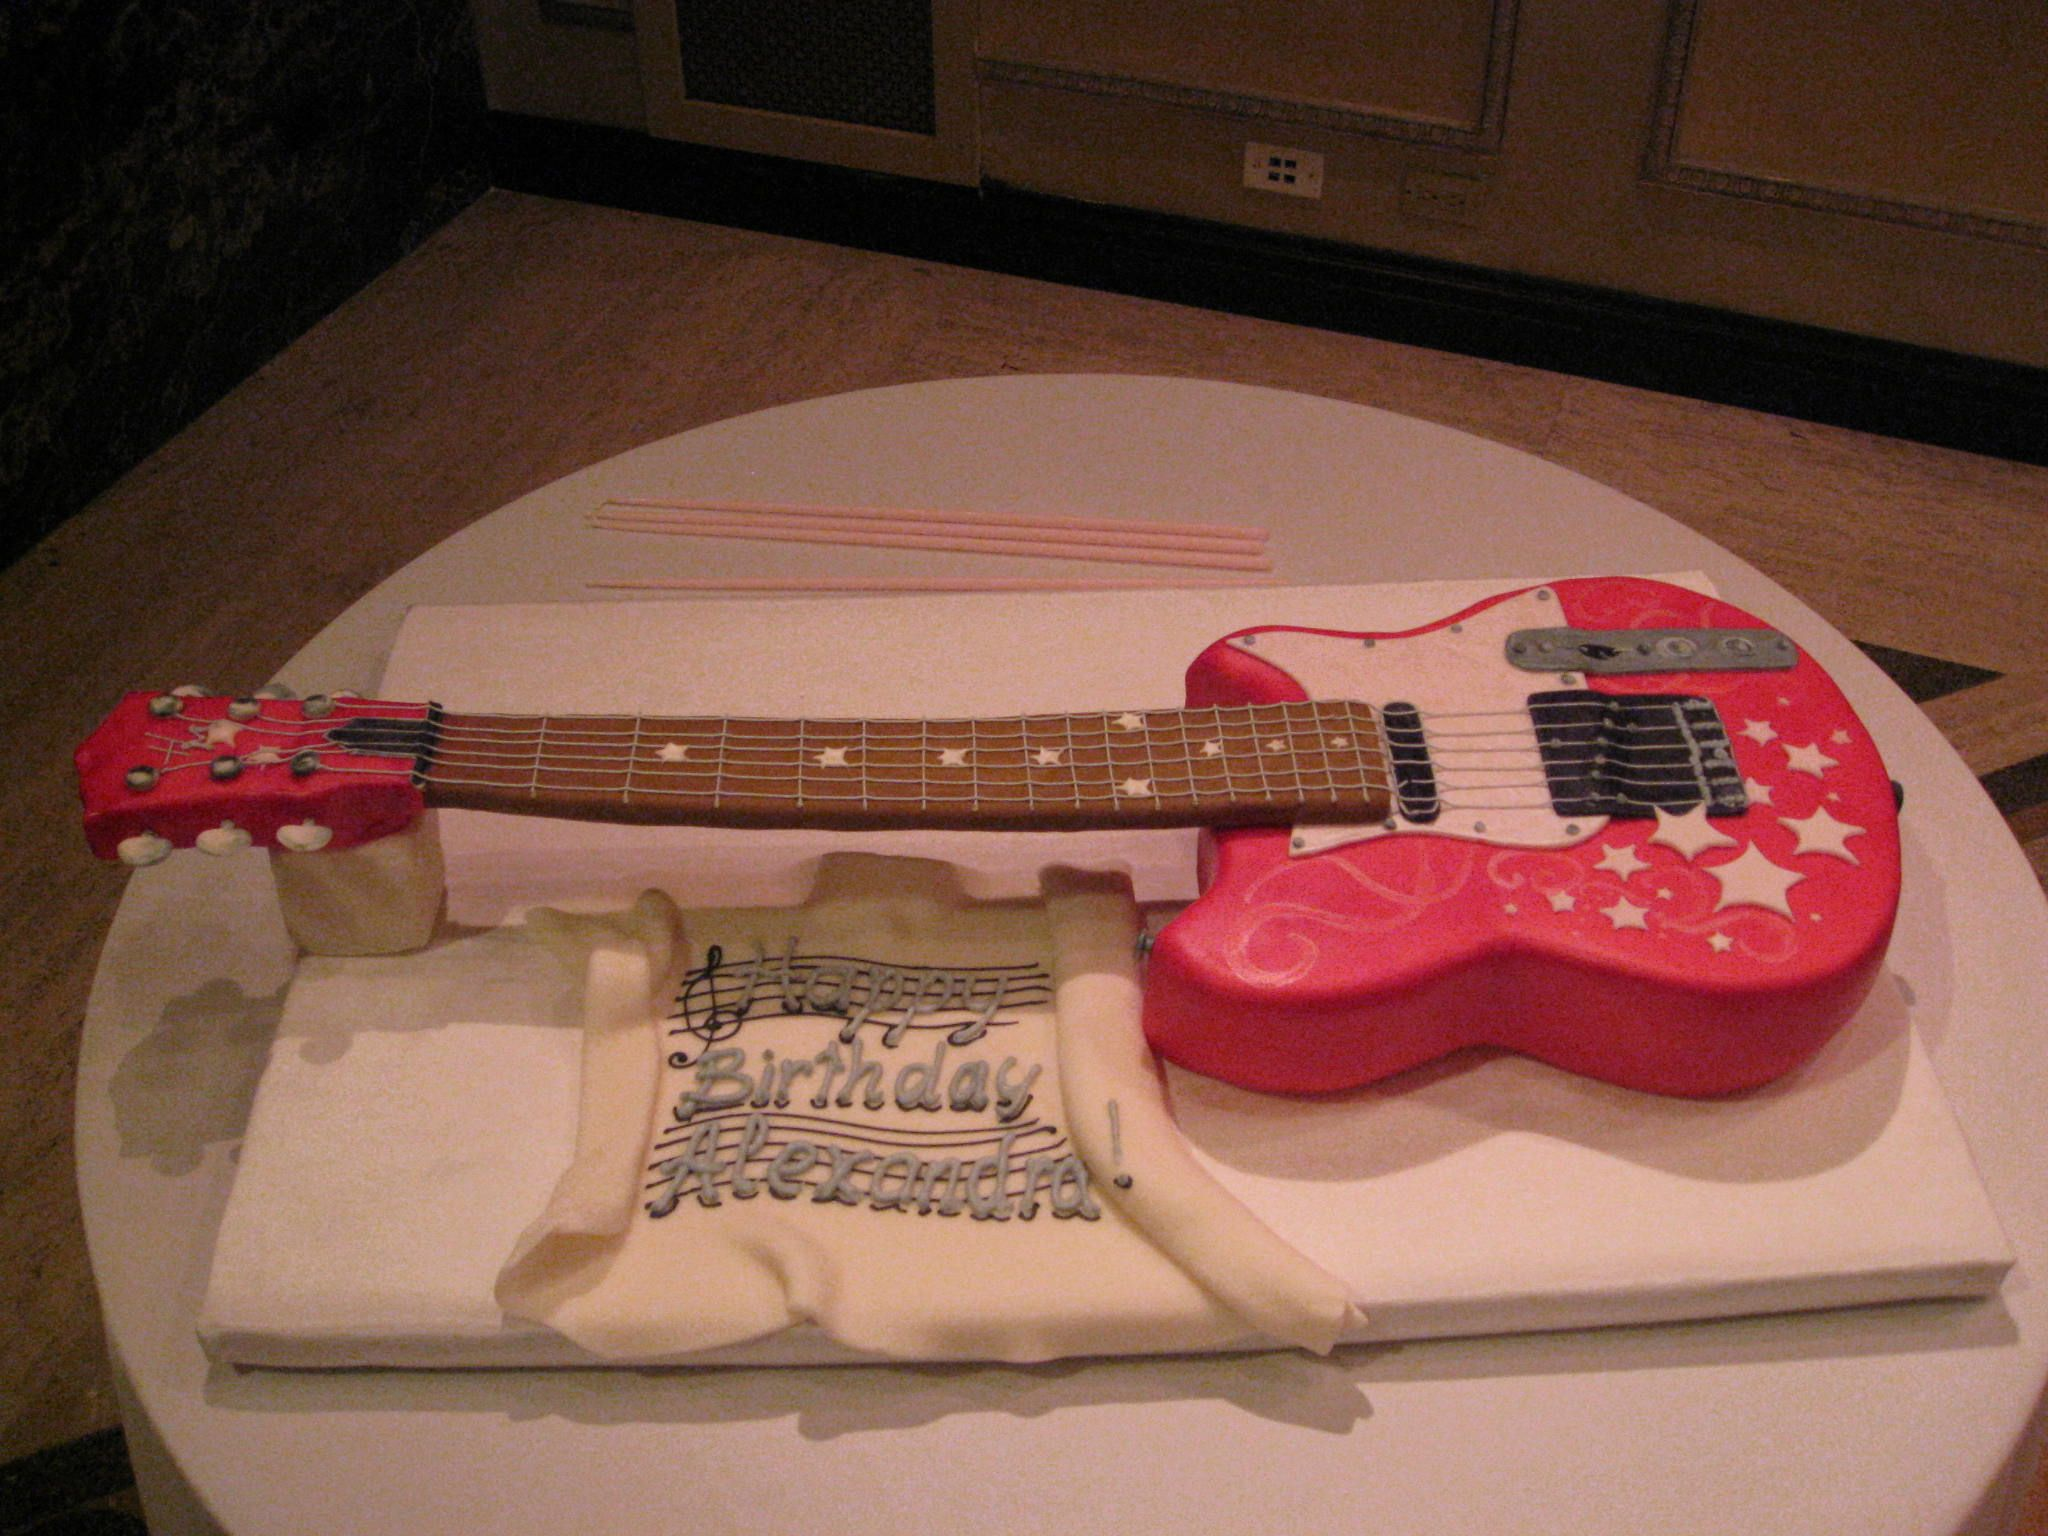 Themed Parties Matching Decor And Catering Mazelmoments Com Guitar Cake Birthday Party For Teens Unique Cakes